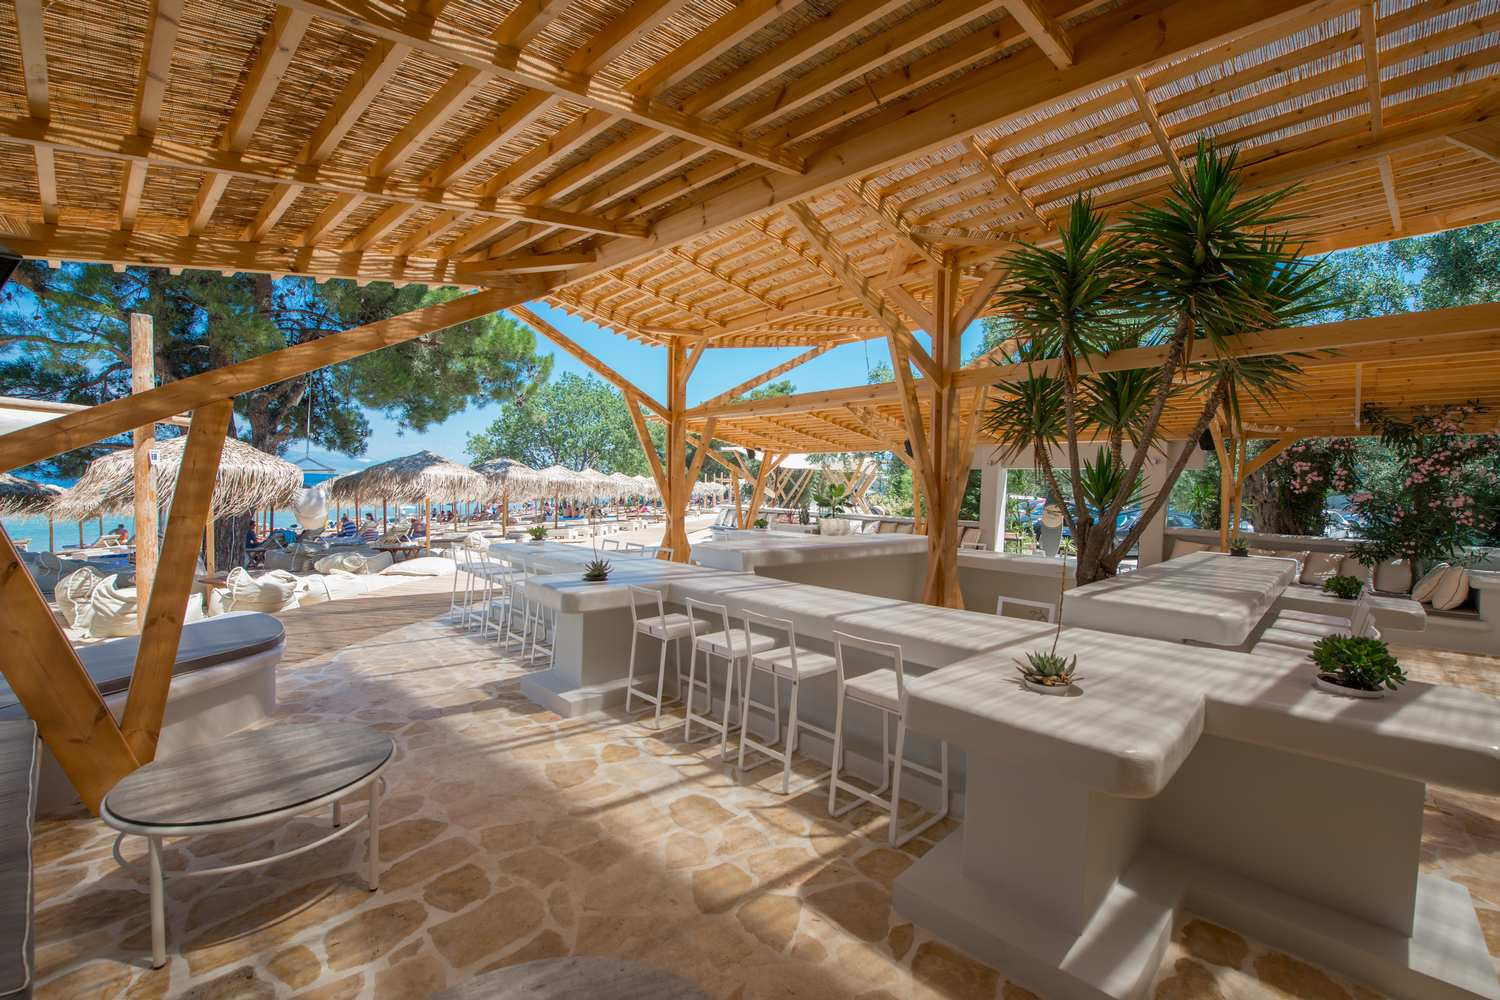 Pachis Beach Bar - Thassos